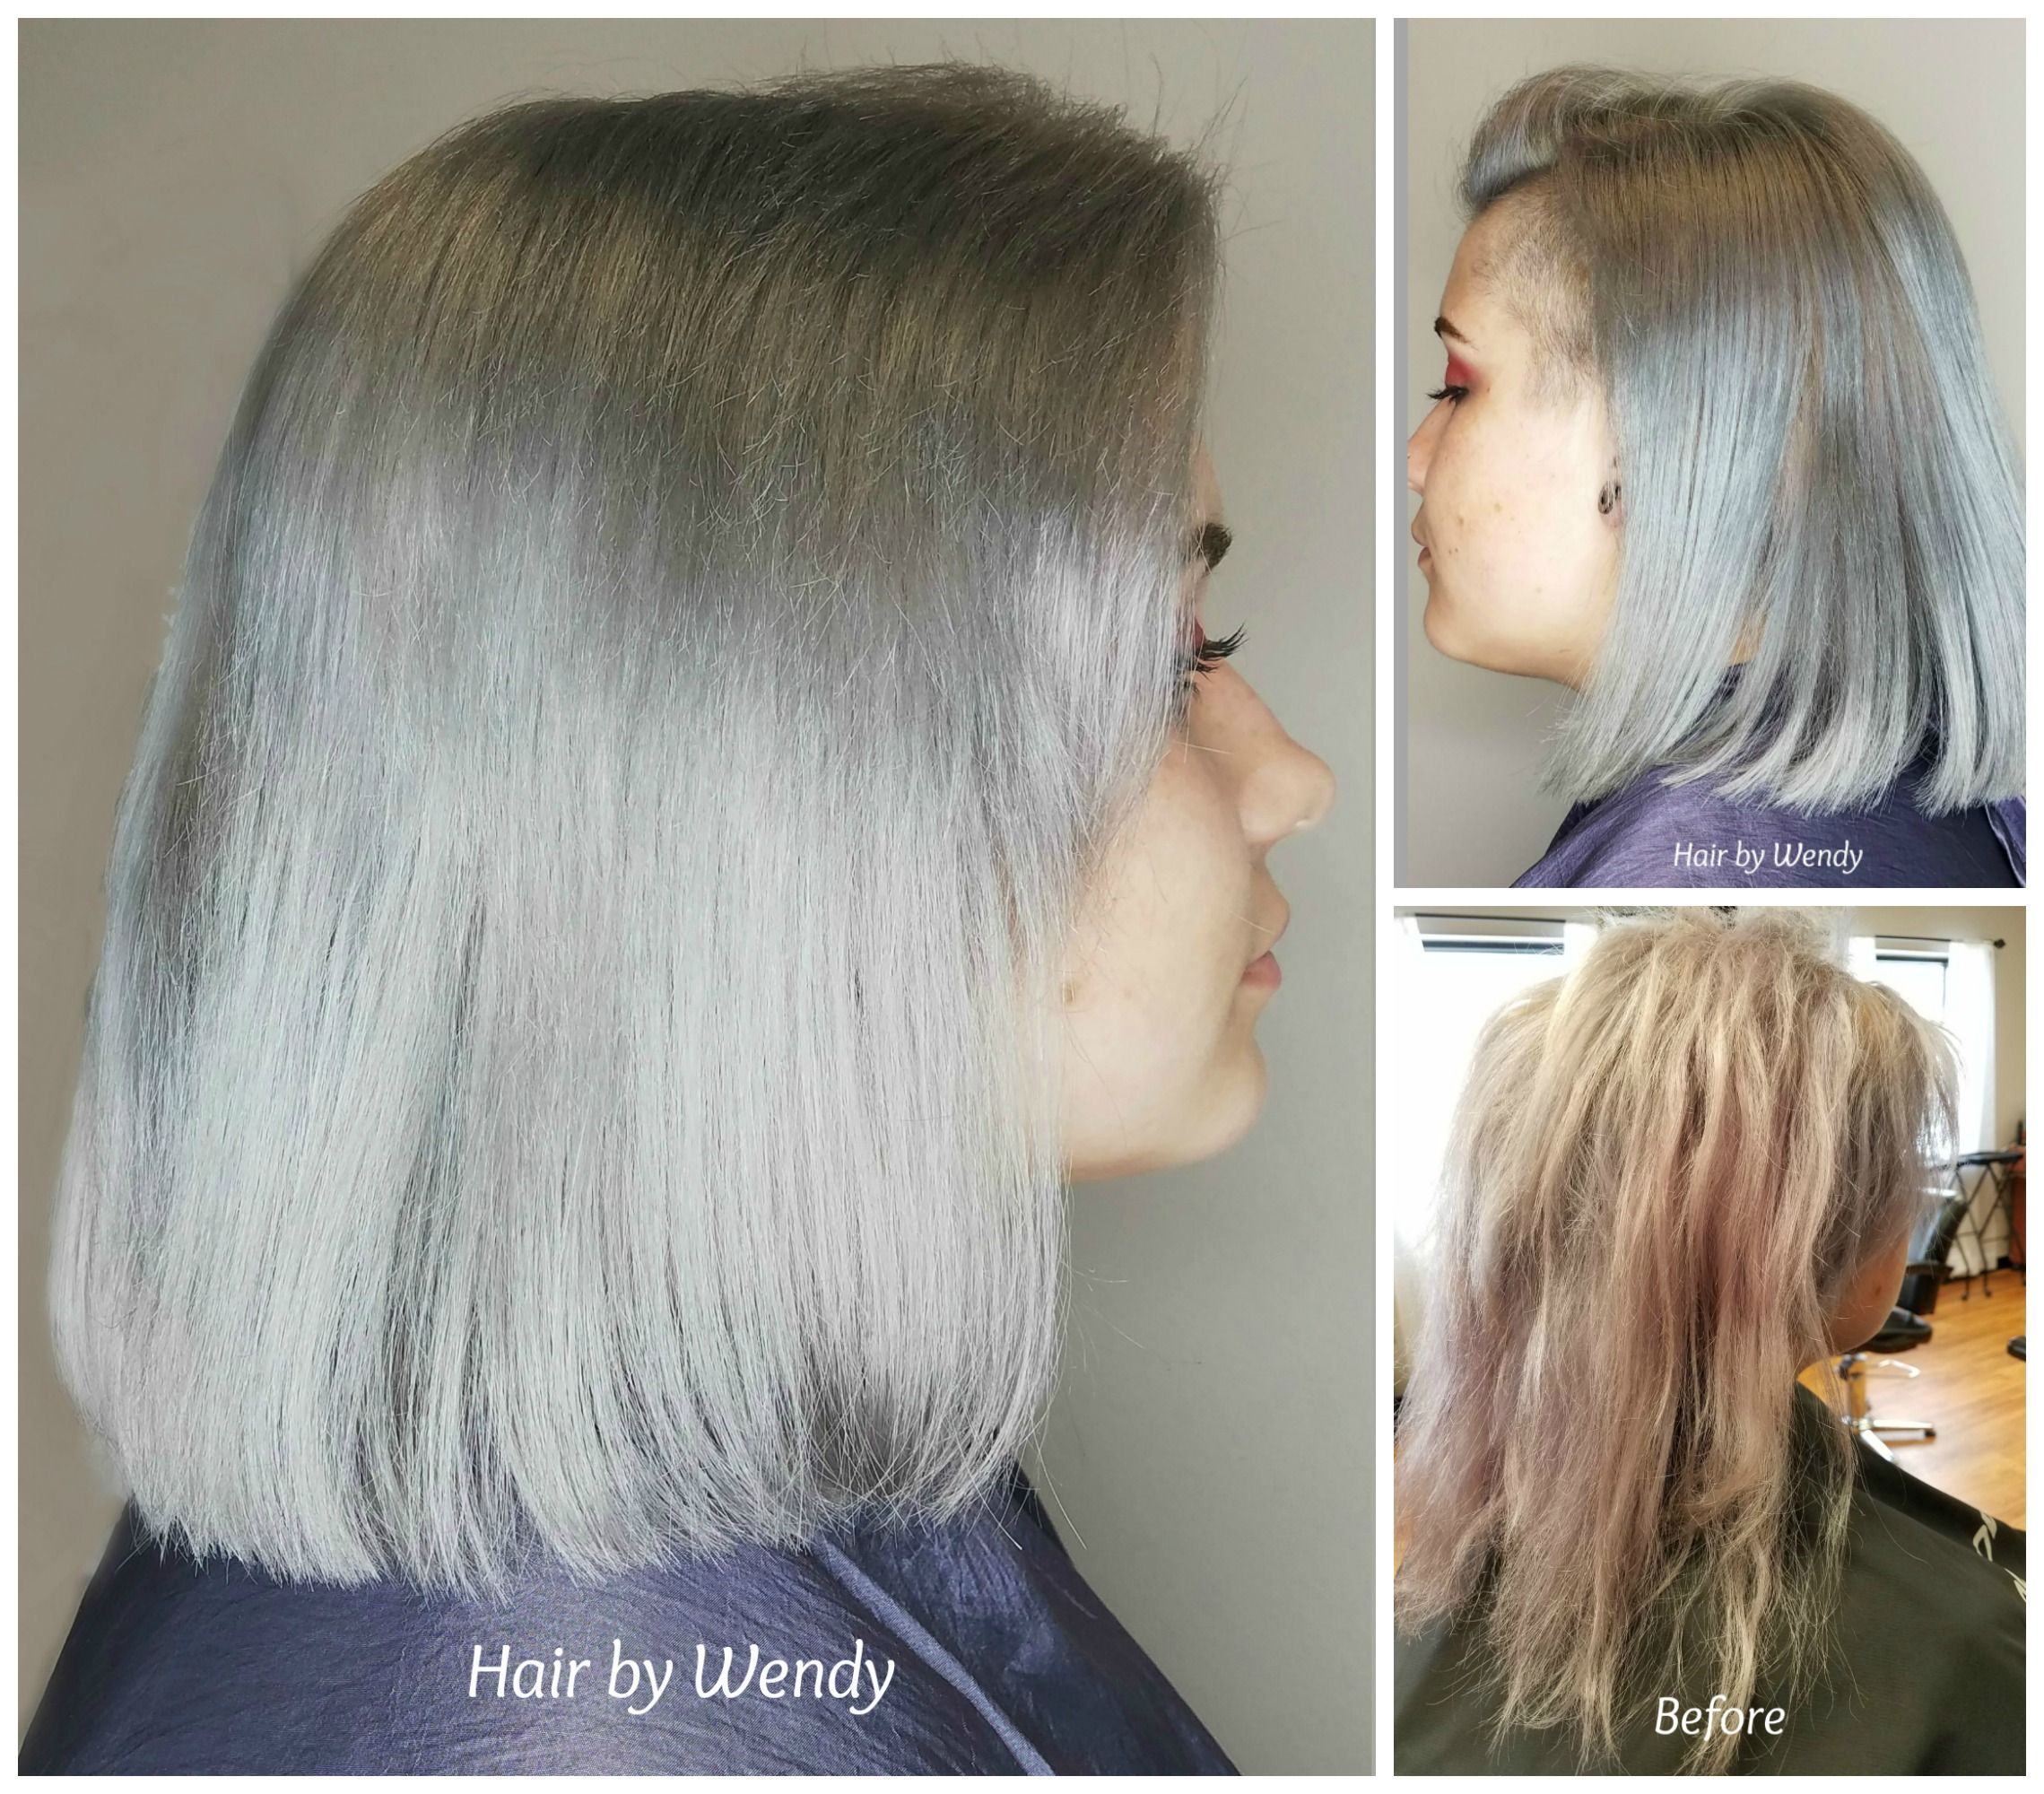 Transformation to beautiful silver! Color design by Wendy